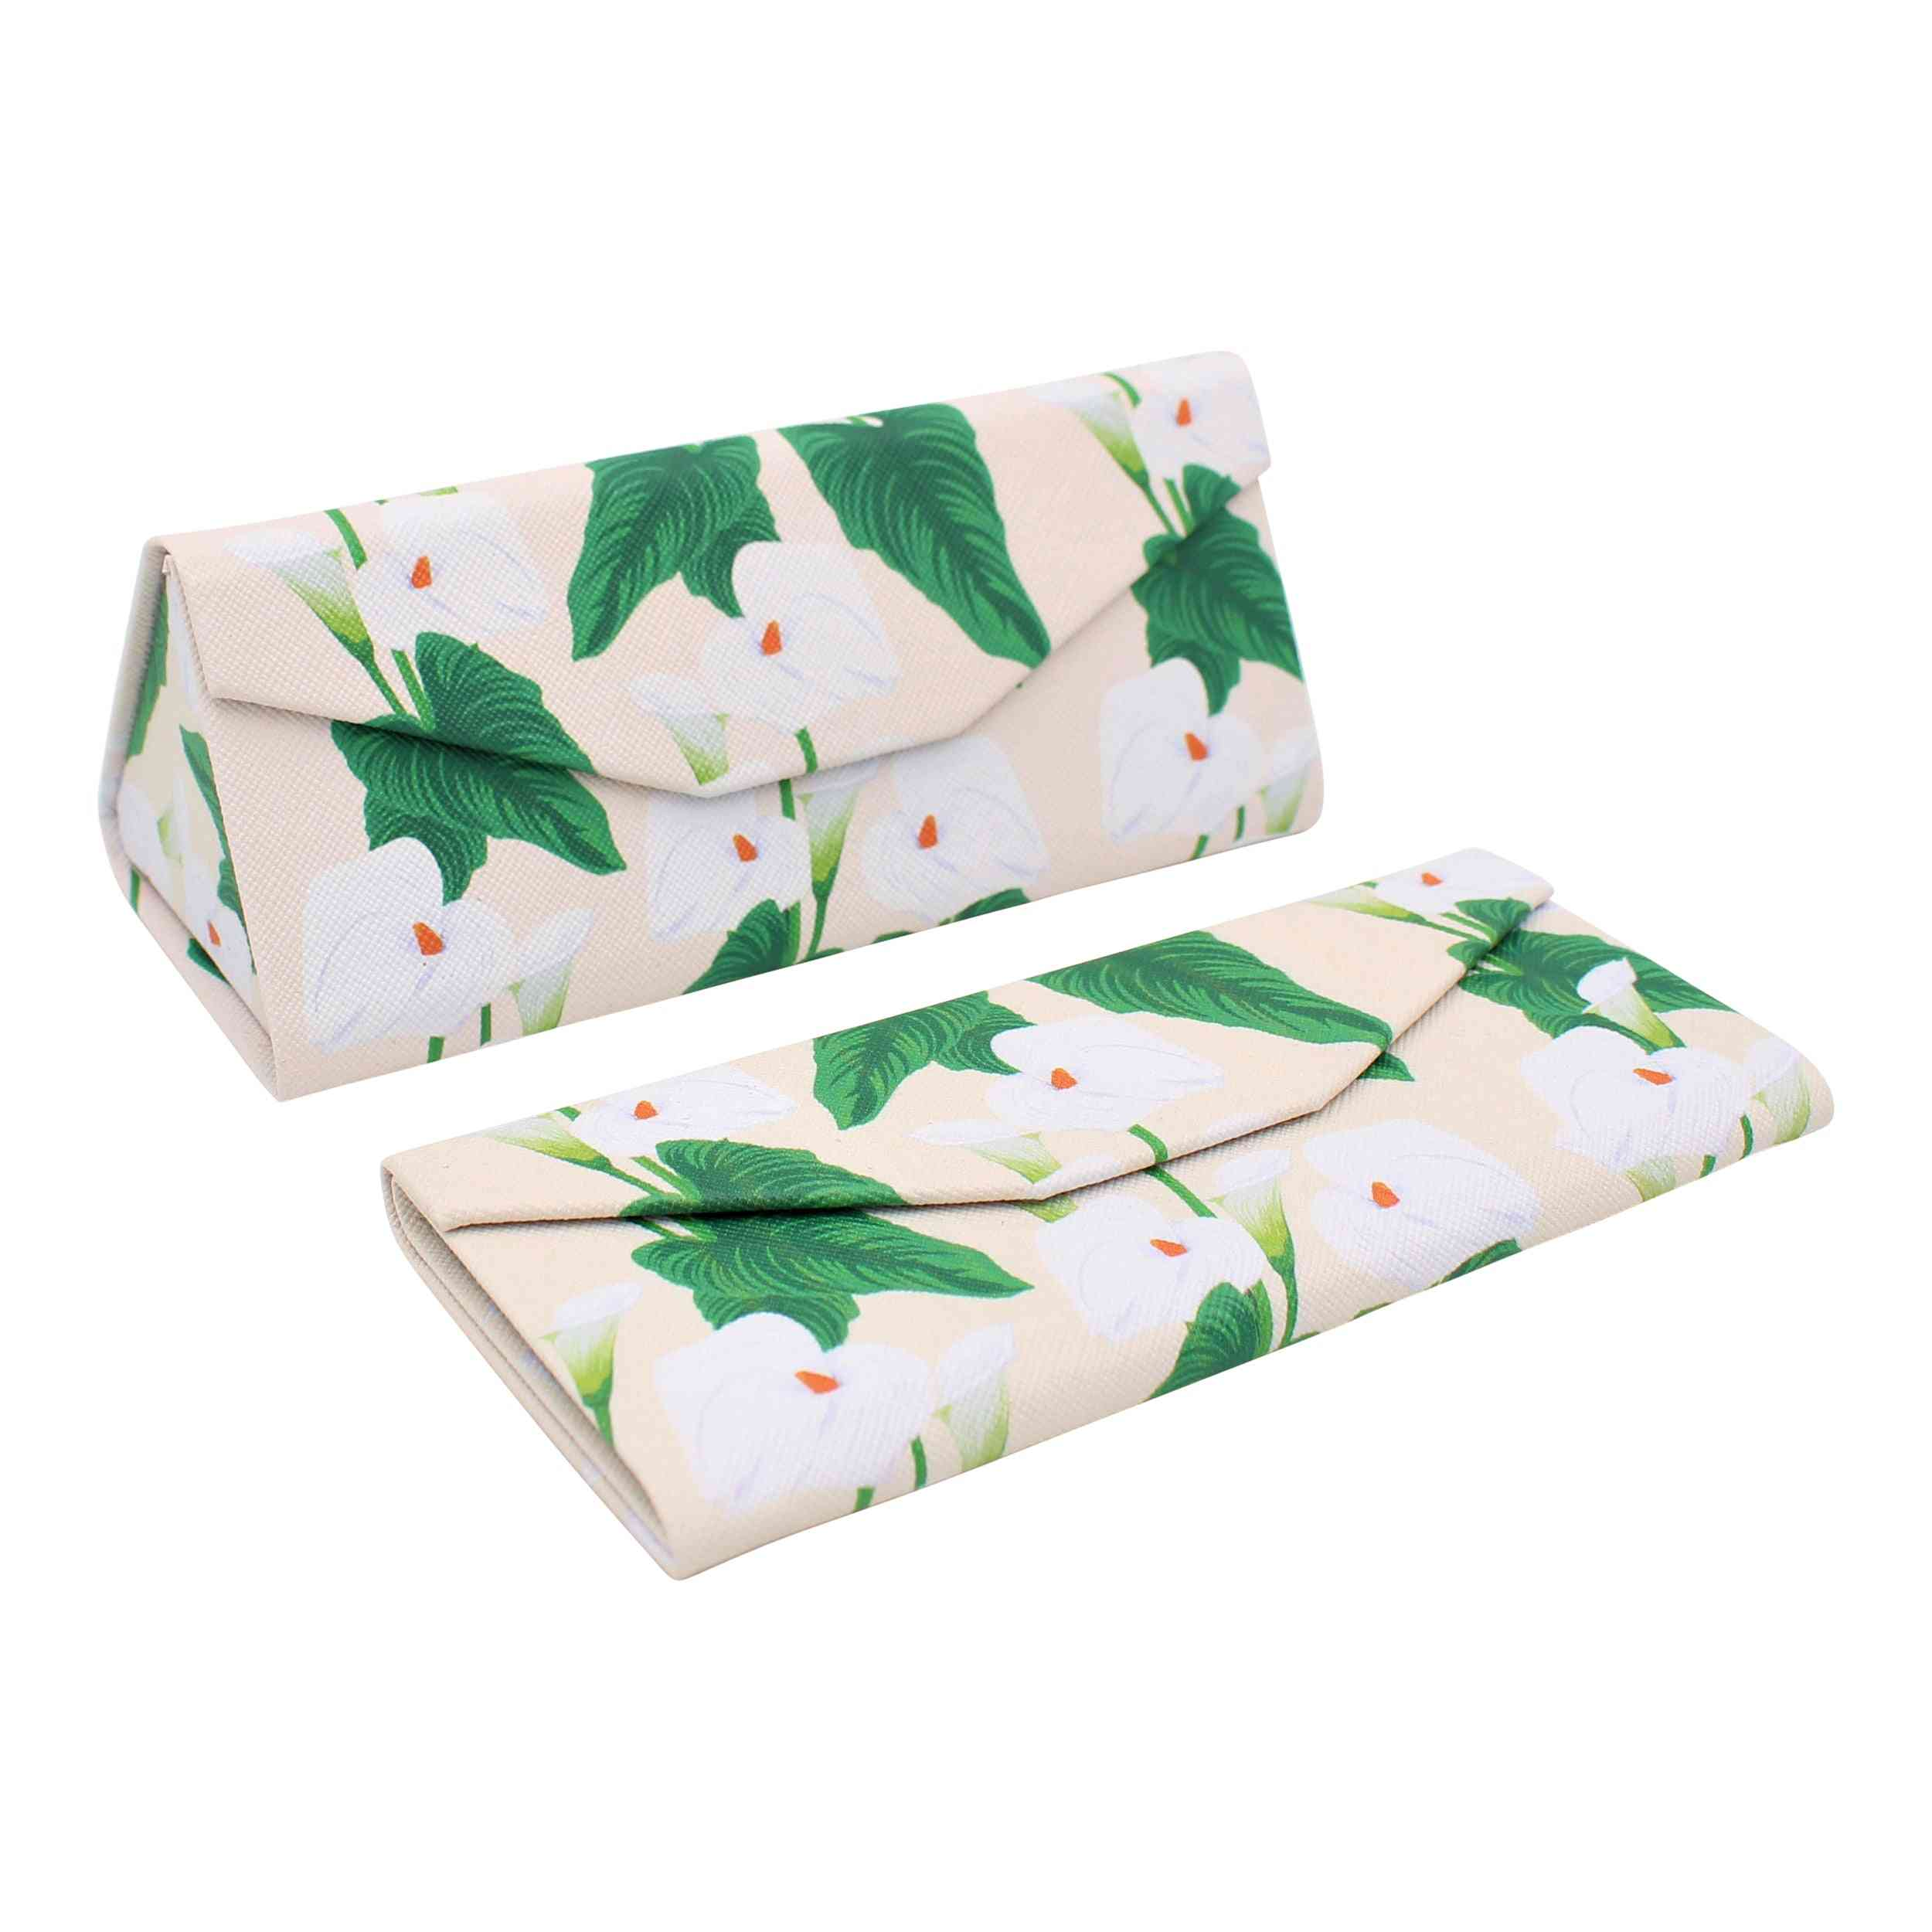 Real Sic Plants Magnetic Folding Pu Leather Hard Glasses Case – Lilly